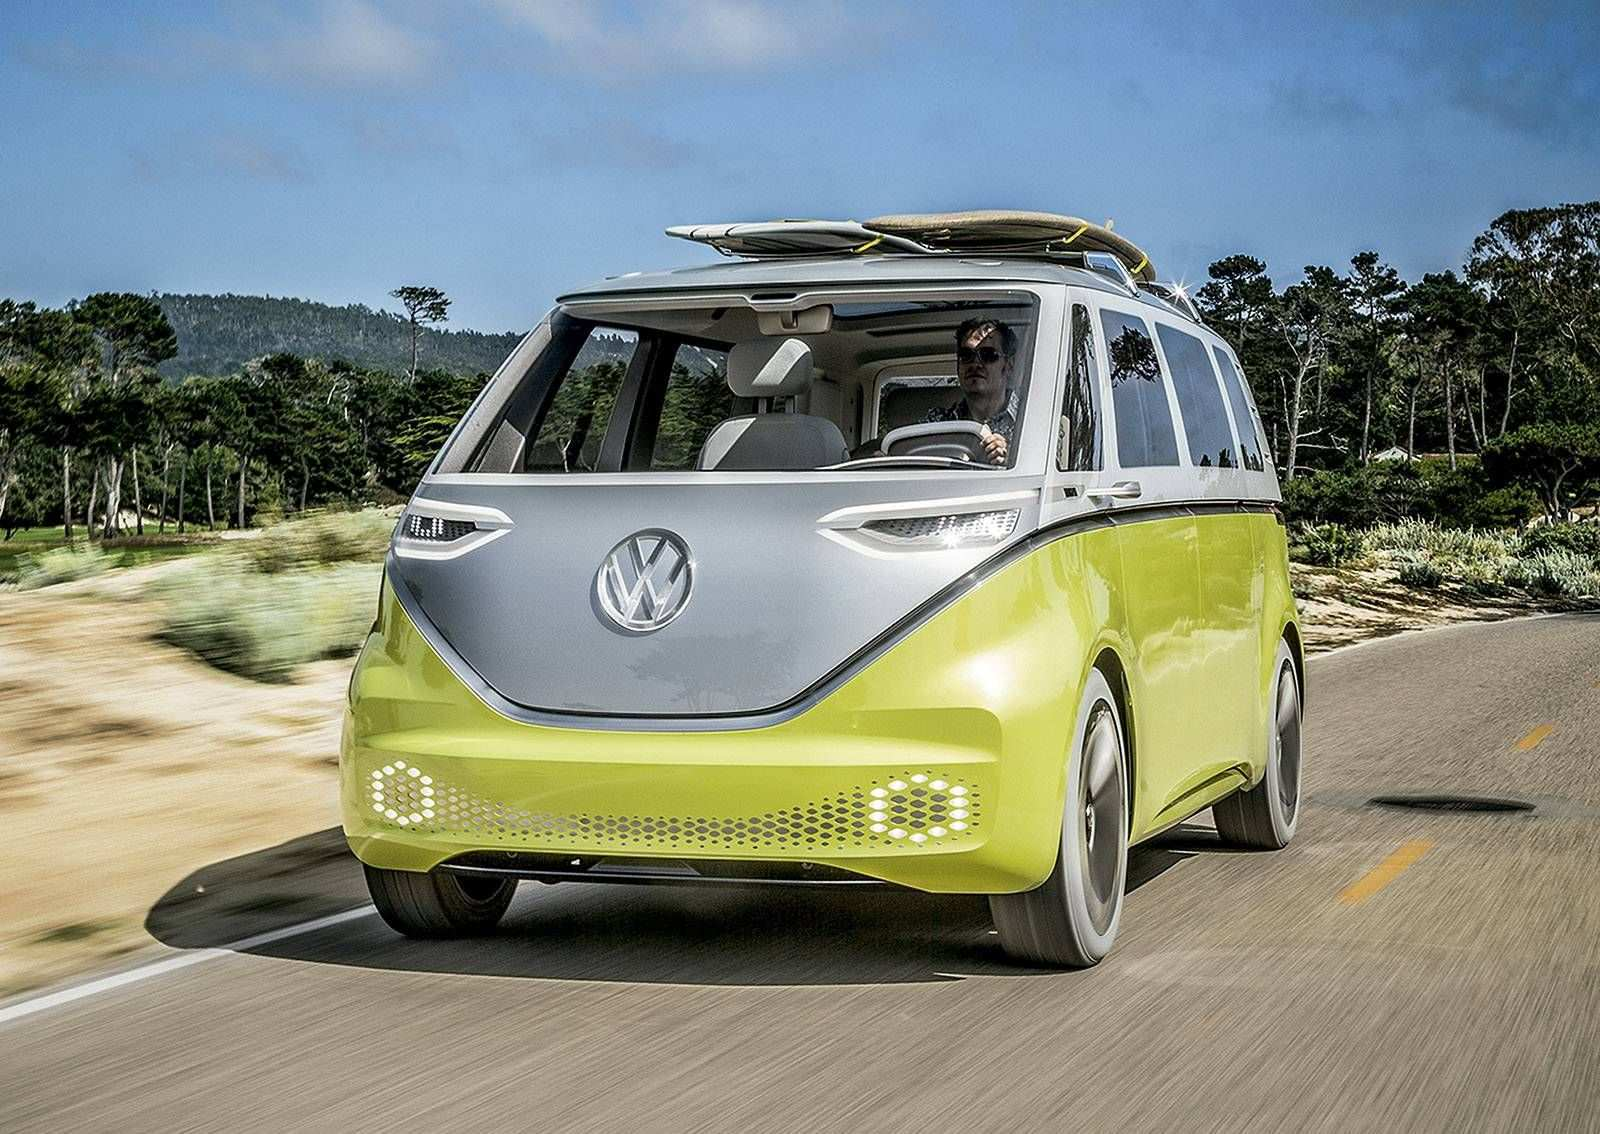 81 All New Vw Kombi 2019 Price Design And Review